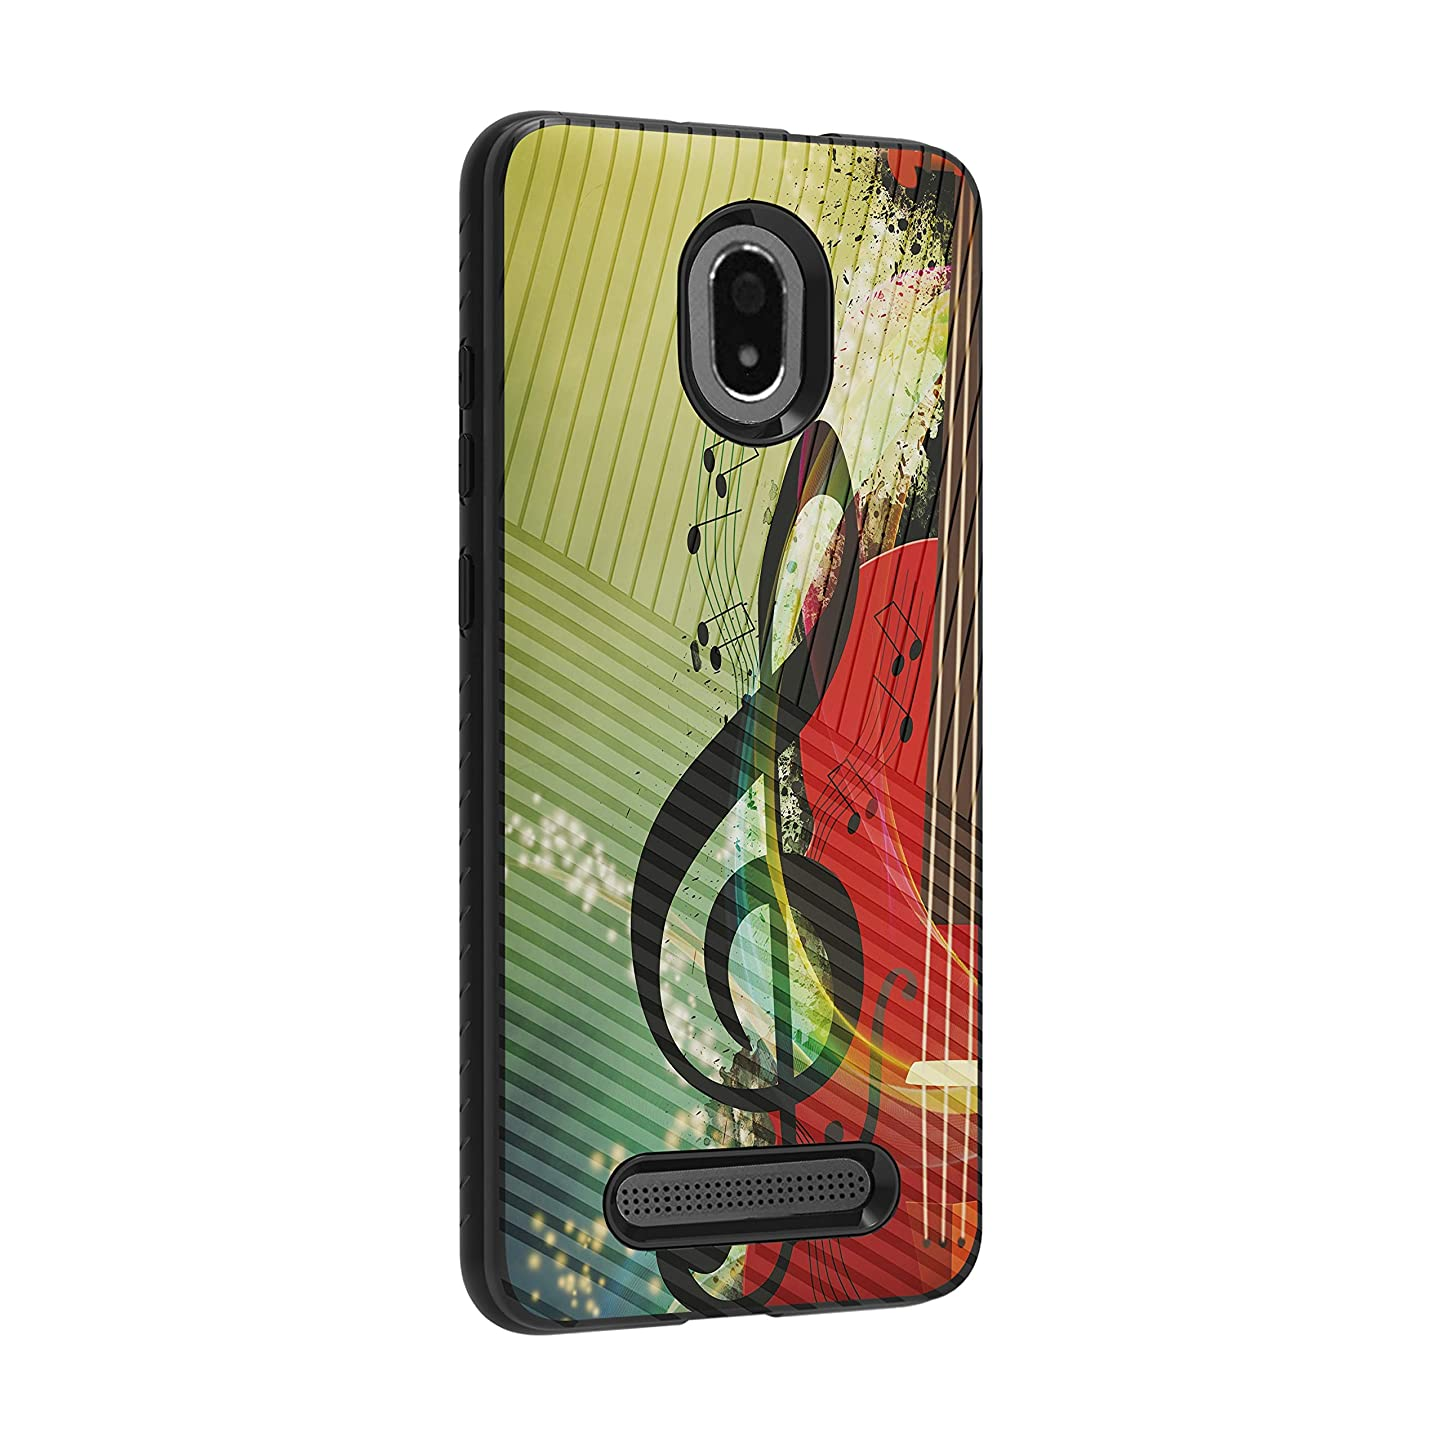 TurtleArmor | Compatible for Foxx Miro Case | FOXXD Miro Case | L590 | Slim Armor Hybrid Dual Layer Engraved Grooves Shell Case Music Design - Music Symbol Note qpxpqvghxyf3